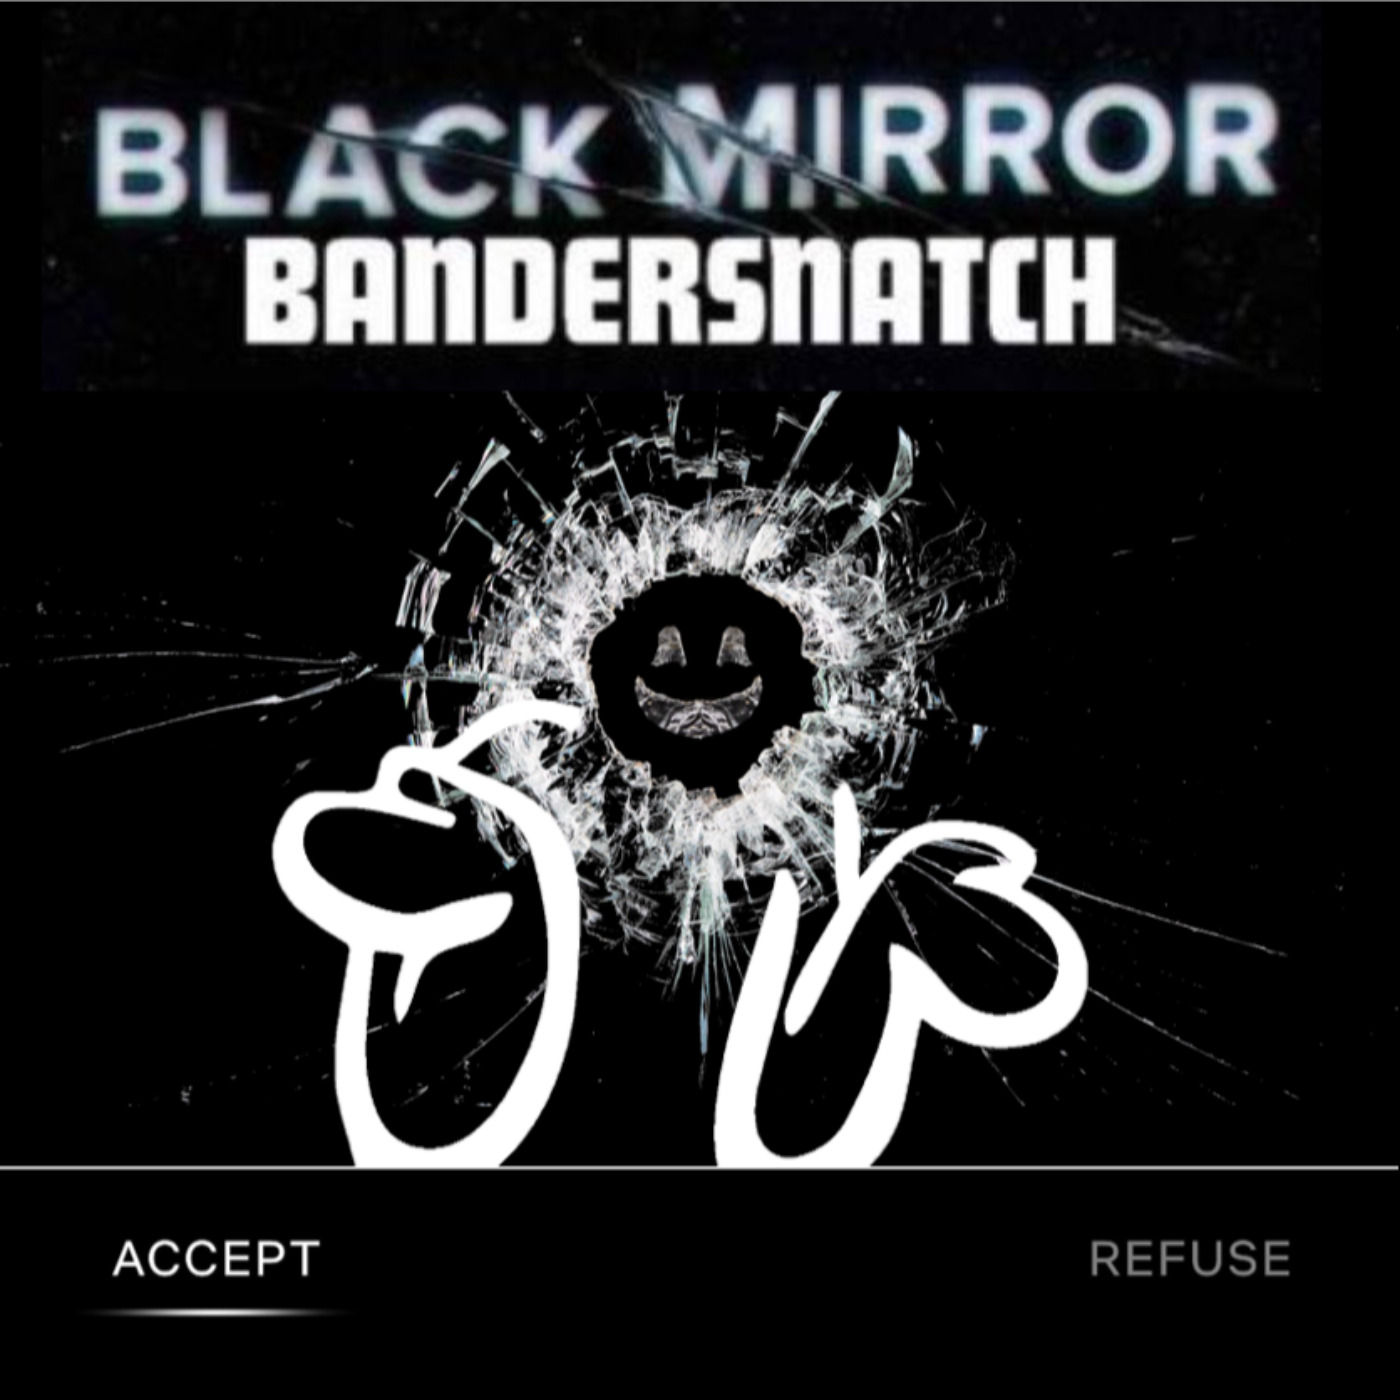 Black Mirror's Bandersnatch